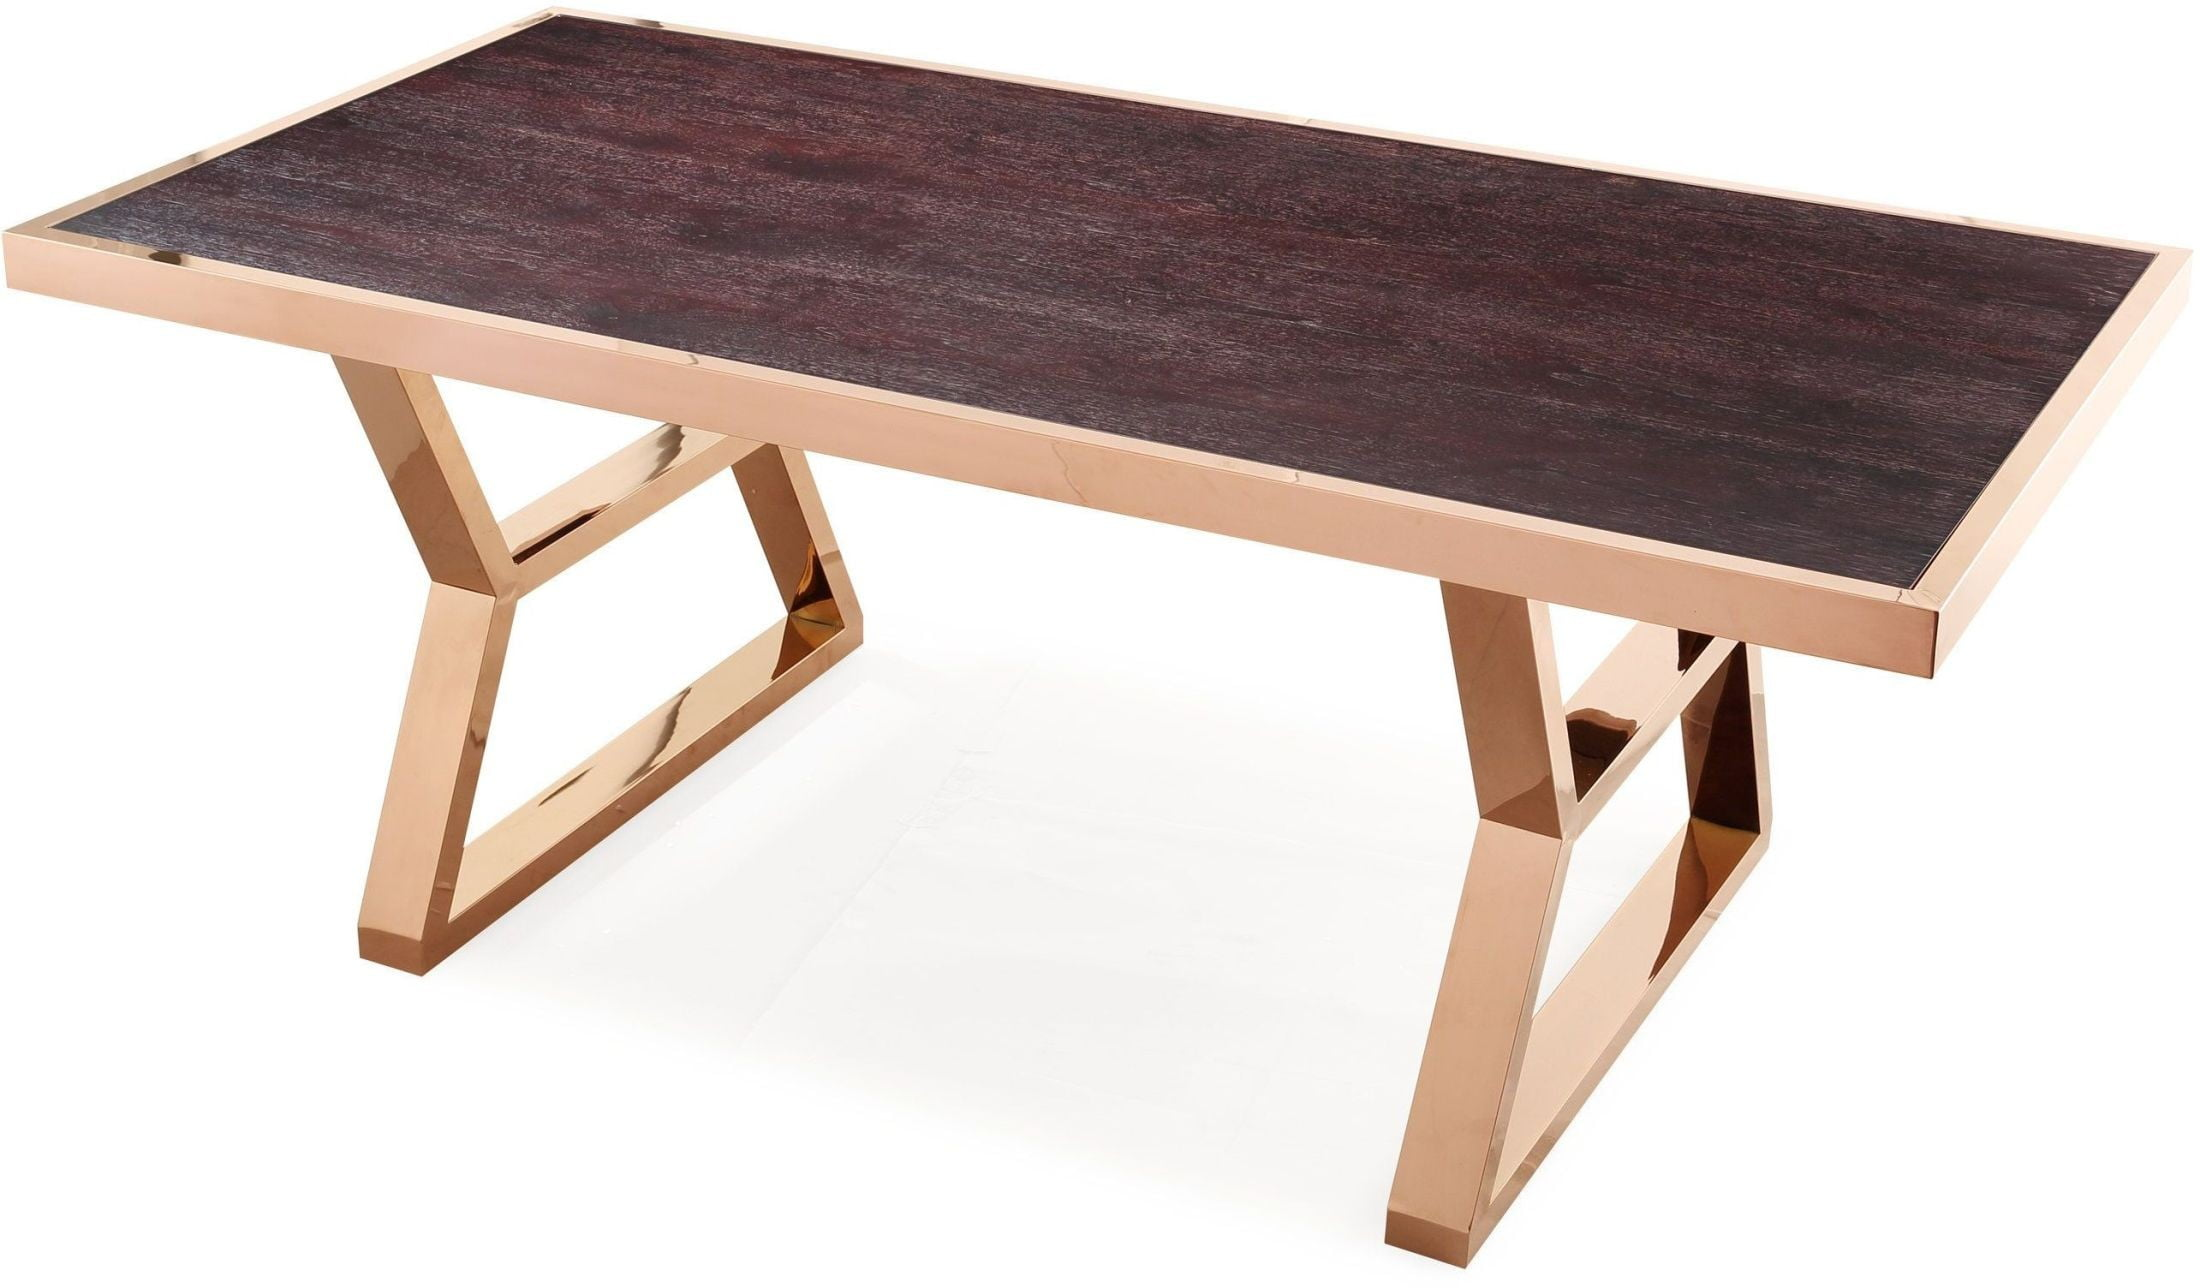 Gold Dining Tables ~ Tula wood gold metal dining table d tov furniture